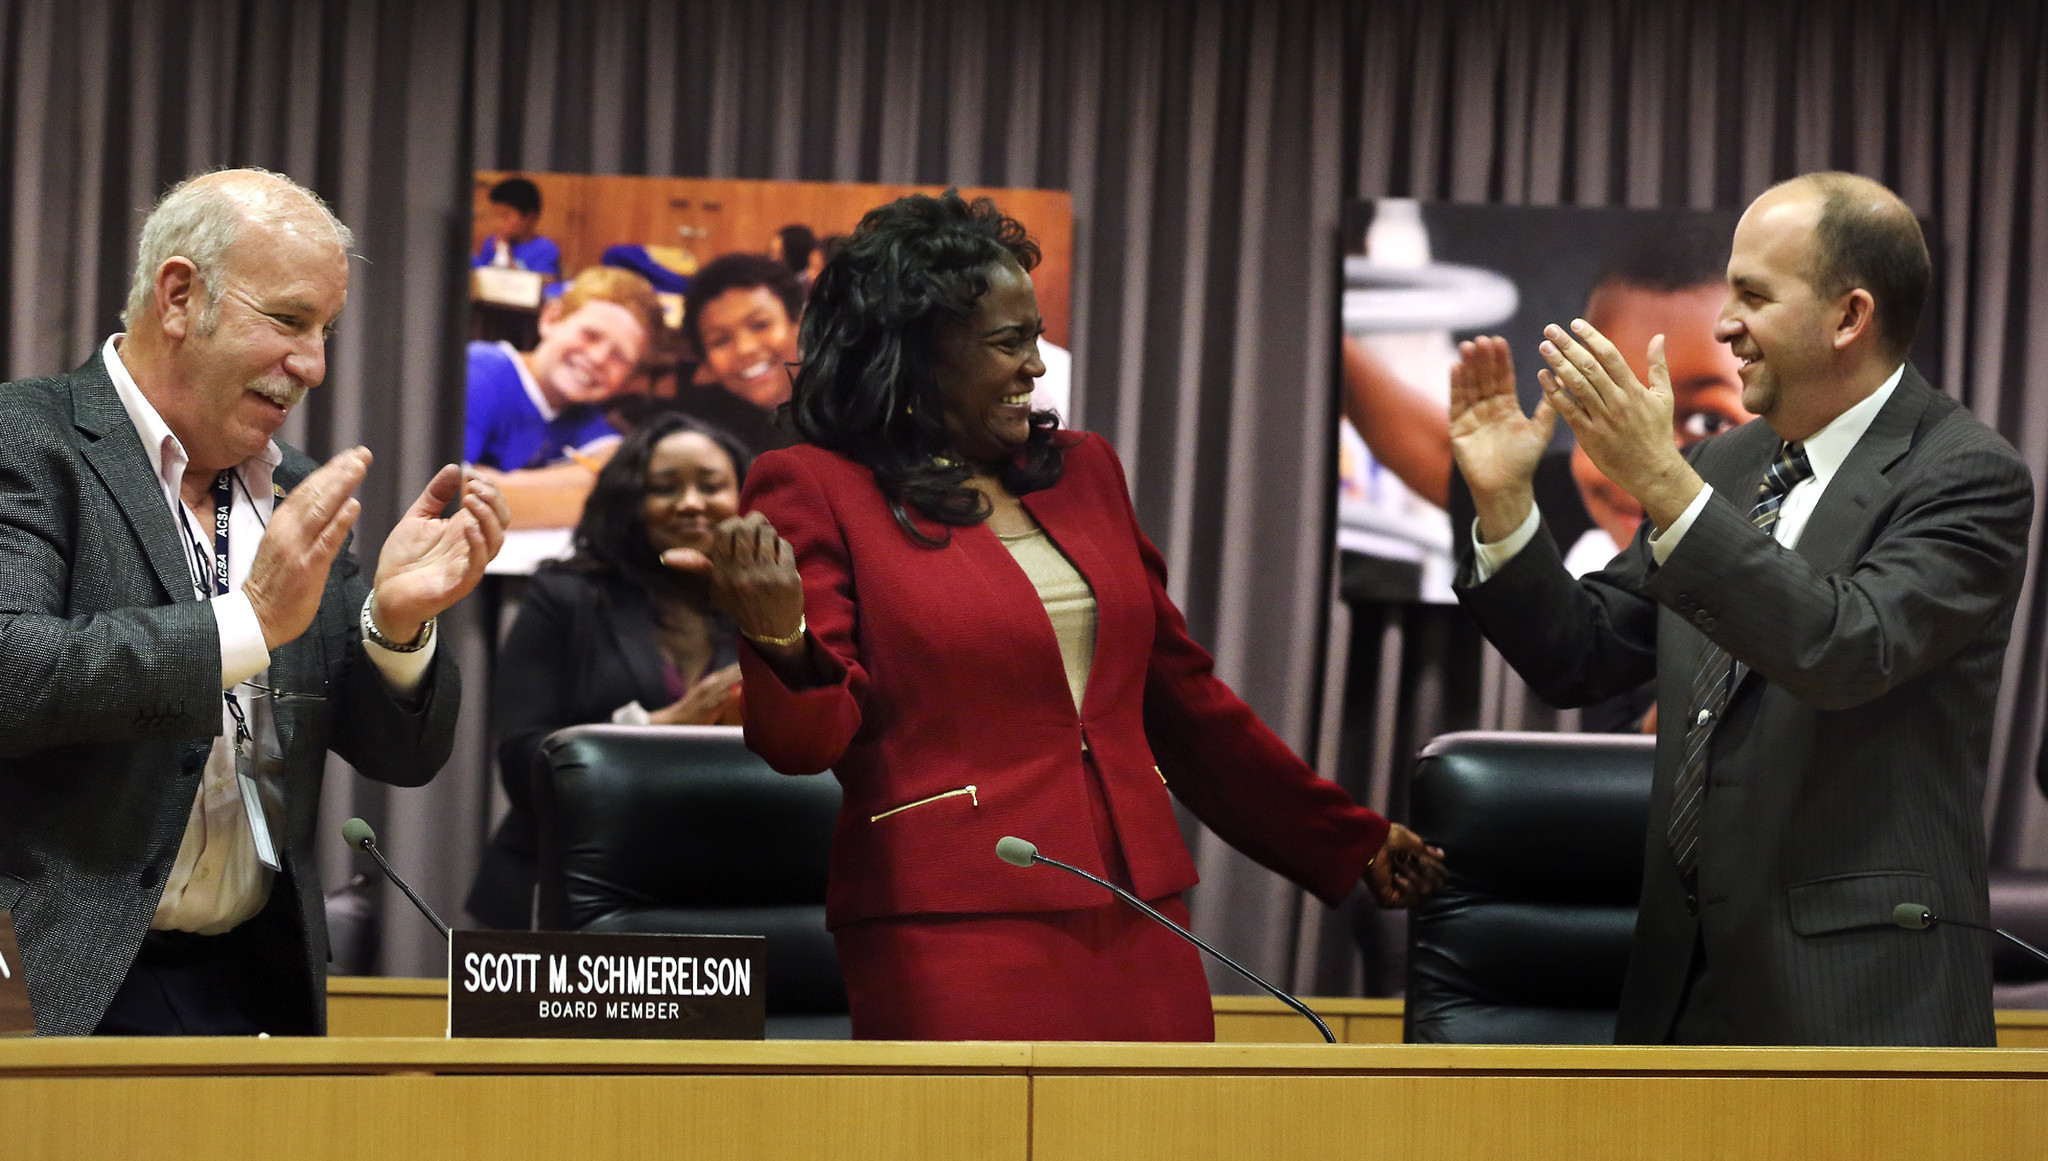 So far, L.A. schools Supt. Michelle King has won plaudits from board members, including Scott Schmerelson, left, who is staying, and Steve Zimmer, right, who is leaving.